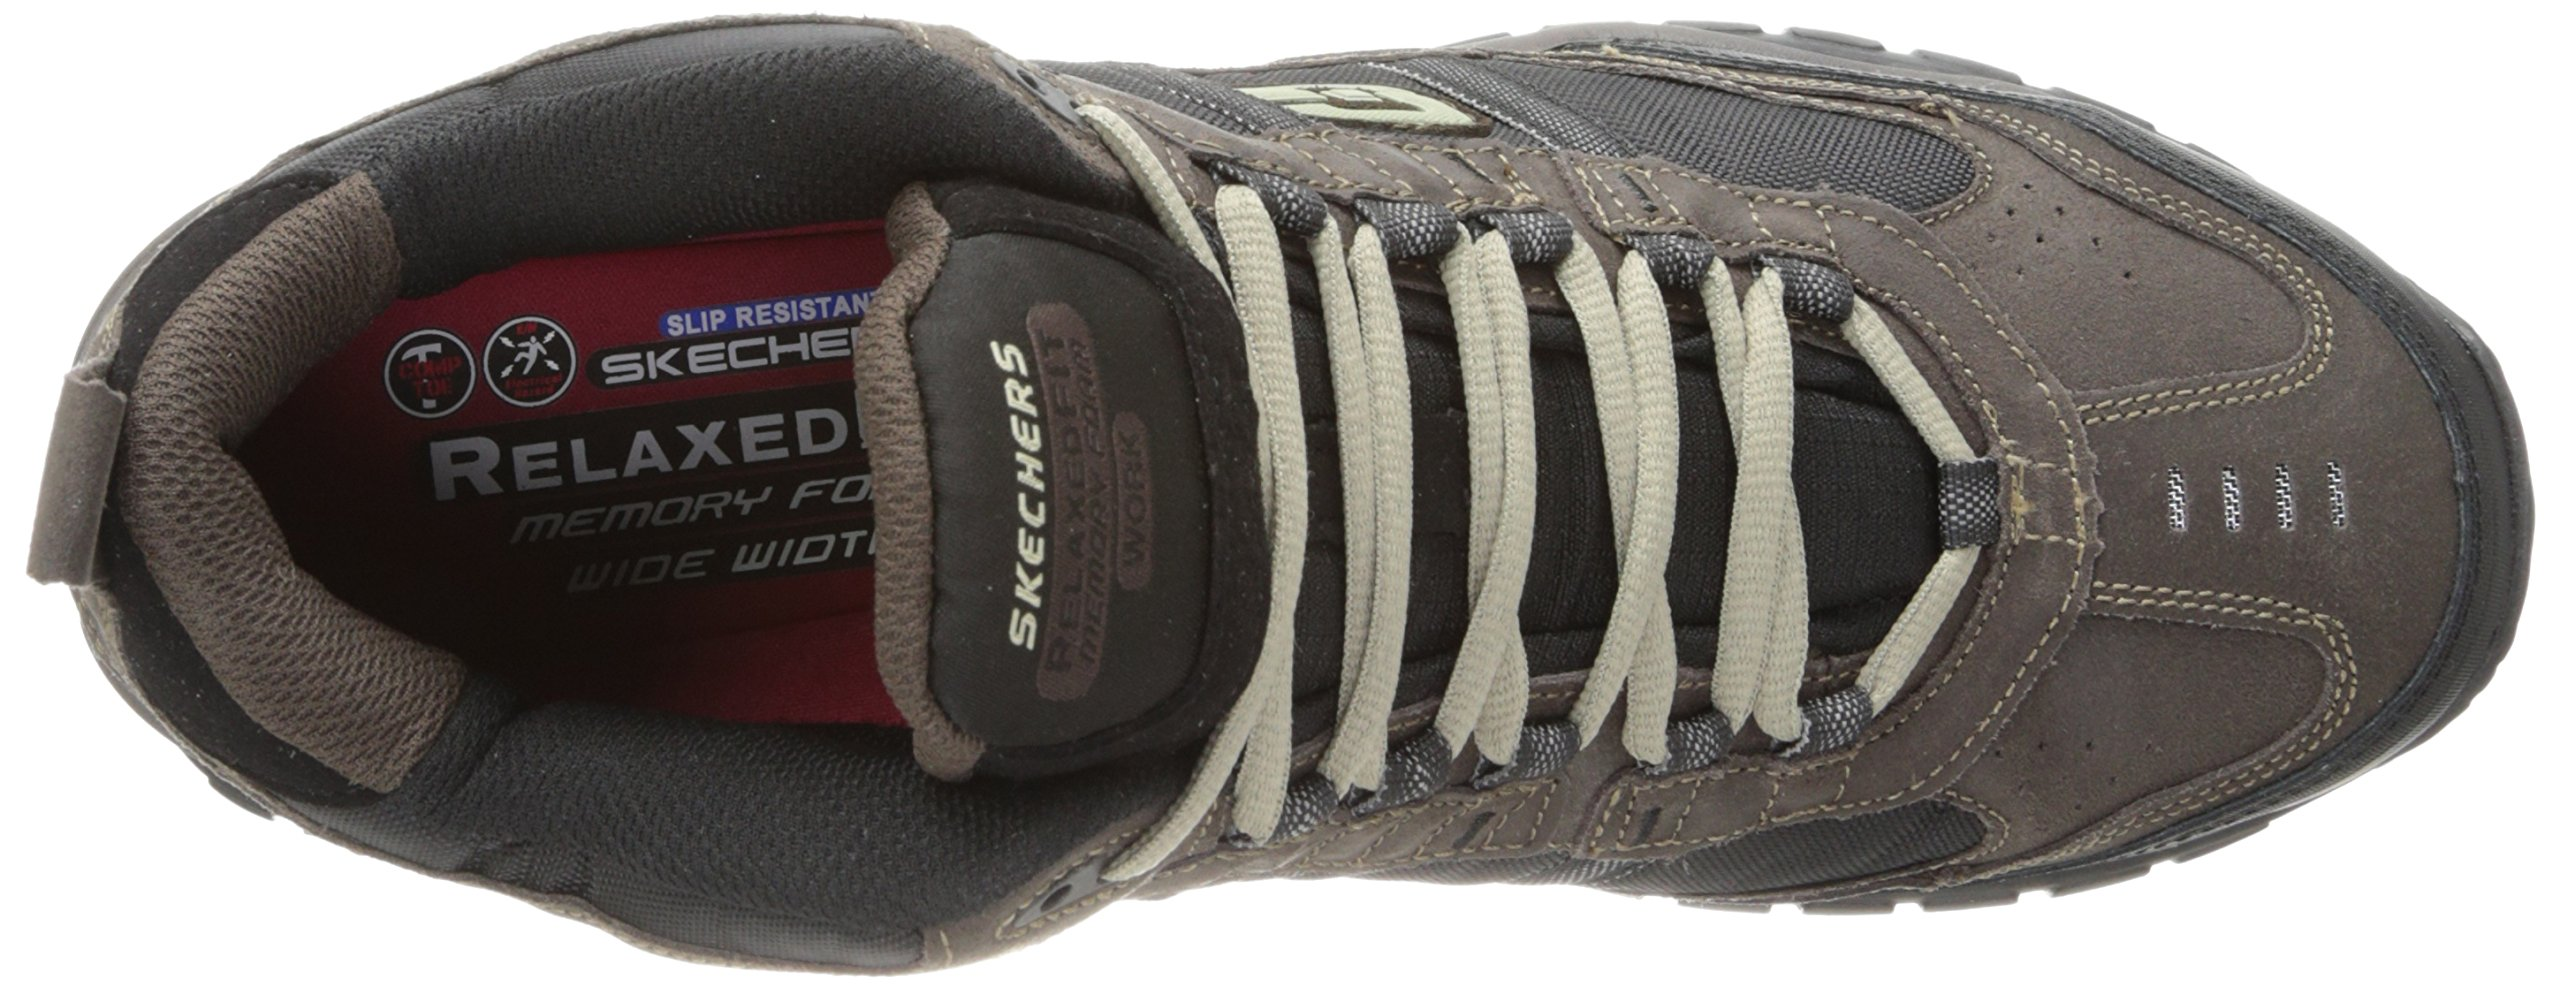 Skechers Men's Work Relaxed Fit Soft Stride Canopy Comp Toe Shoe, Brown/Black - 11.5 3E US by Skechers (Image #8)